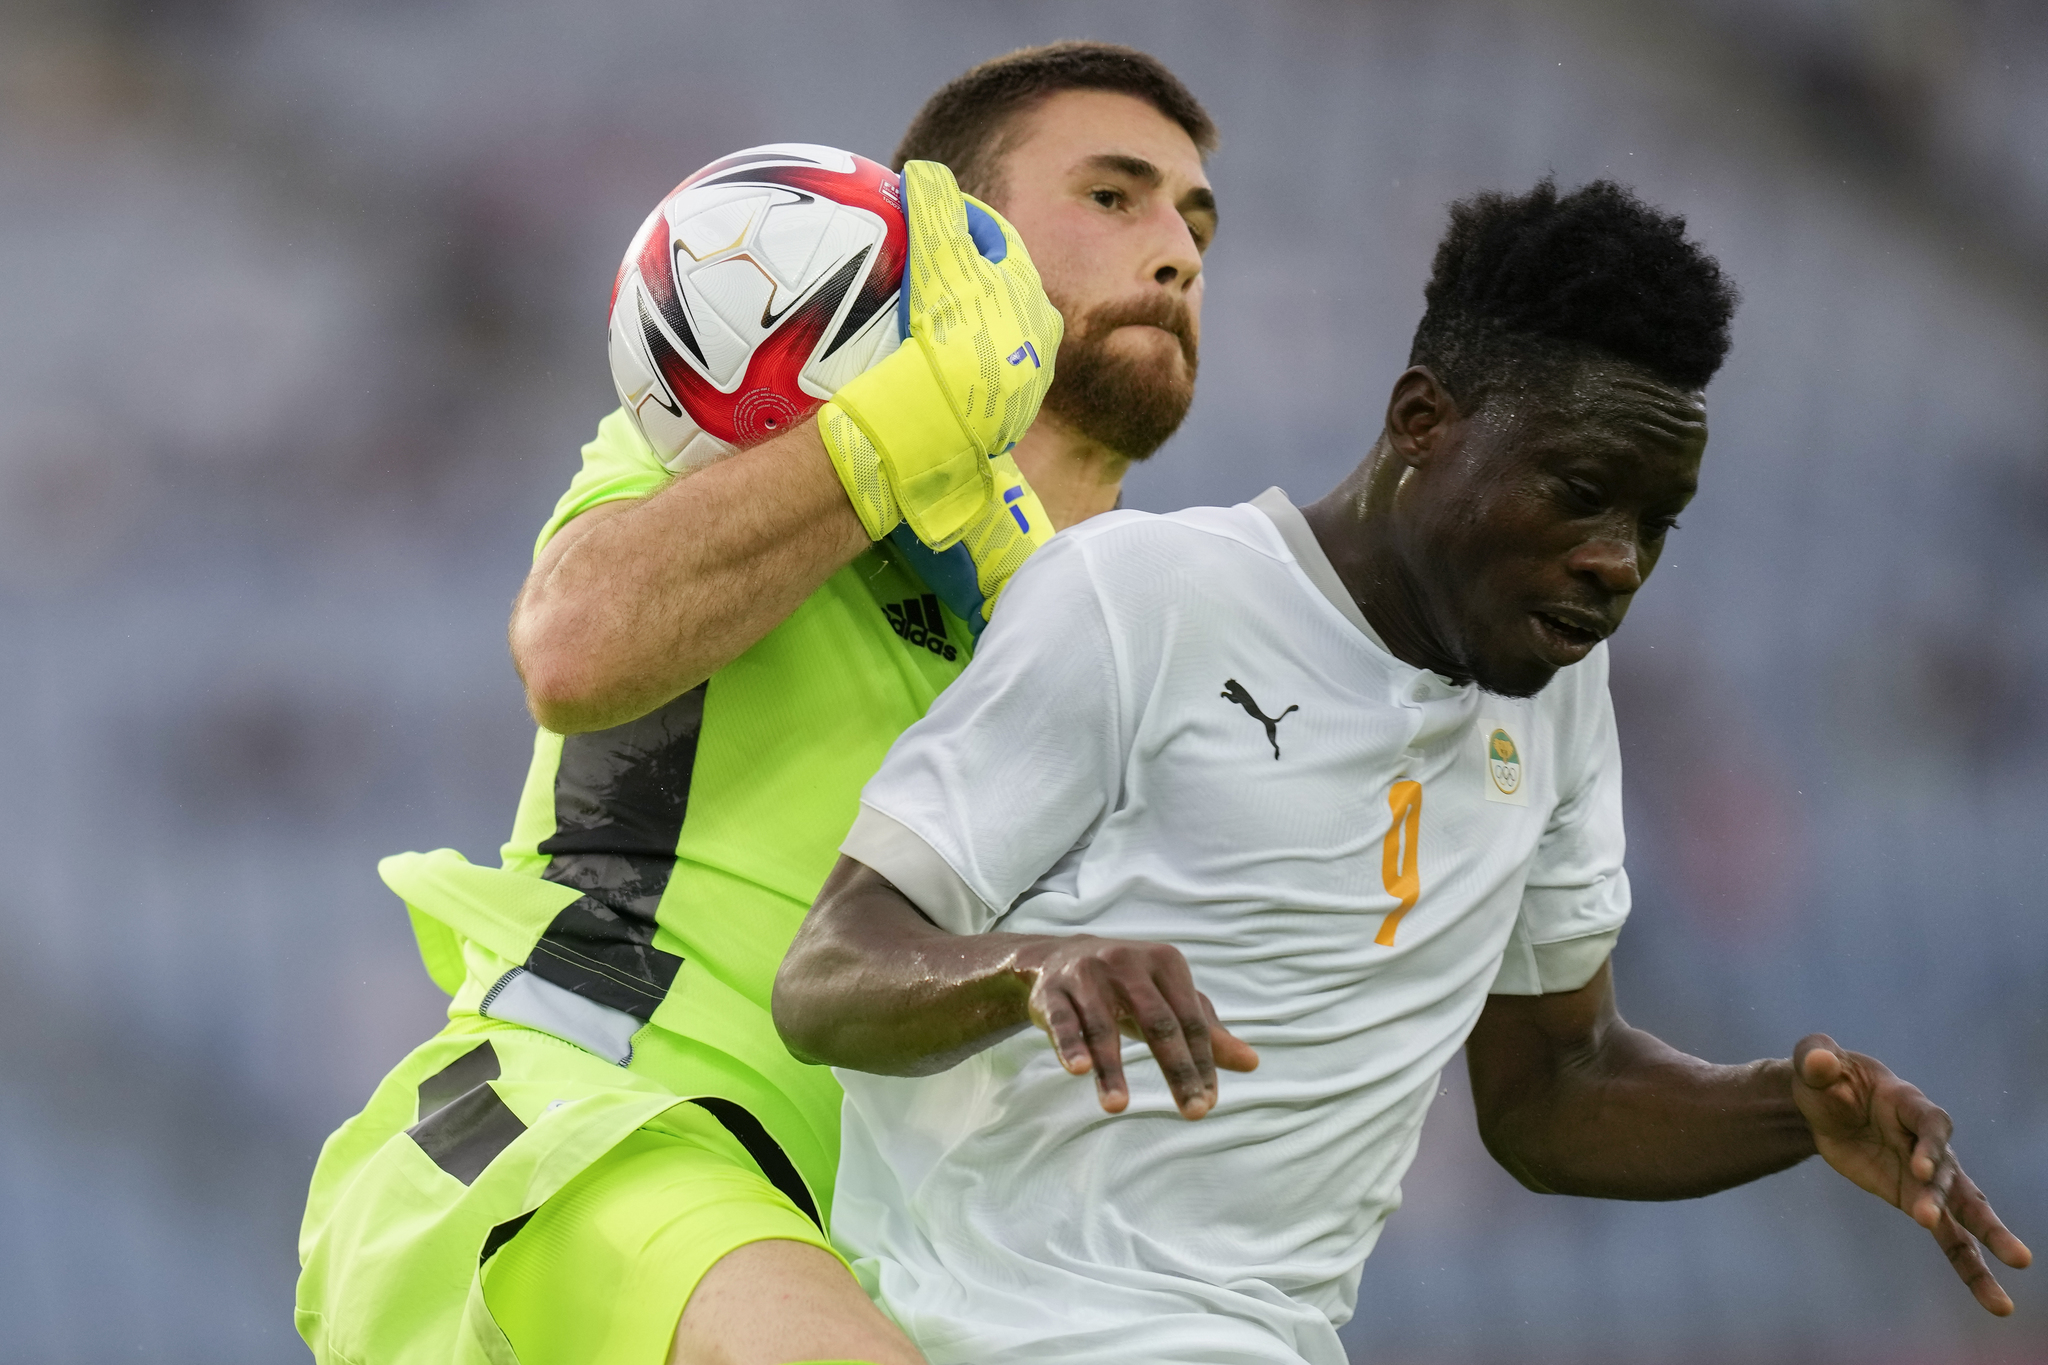 Spain's goalkeeper lt;HIT gt;Unai lt;/HIT gt; lt;HIT gt;Simon lt;/HIT gt; intercepts a shot challenged by Ivory Coast's Youssouf Dao in a men's quarterfinal soccer match at the 2020 Summer Olympics, Saturday, July 31, 2021, in Rifu, Japan, Tokyo. (AP Photo/Andre Penner)